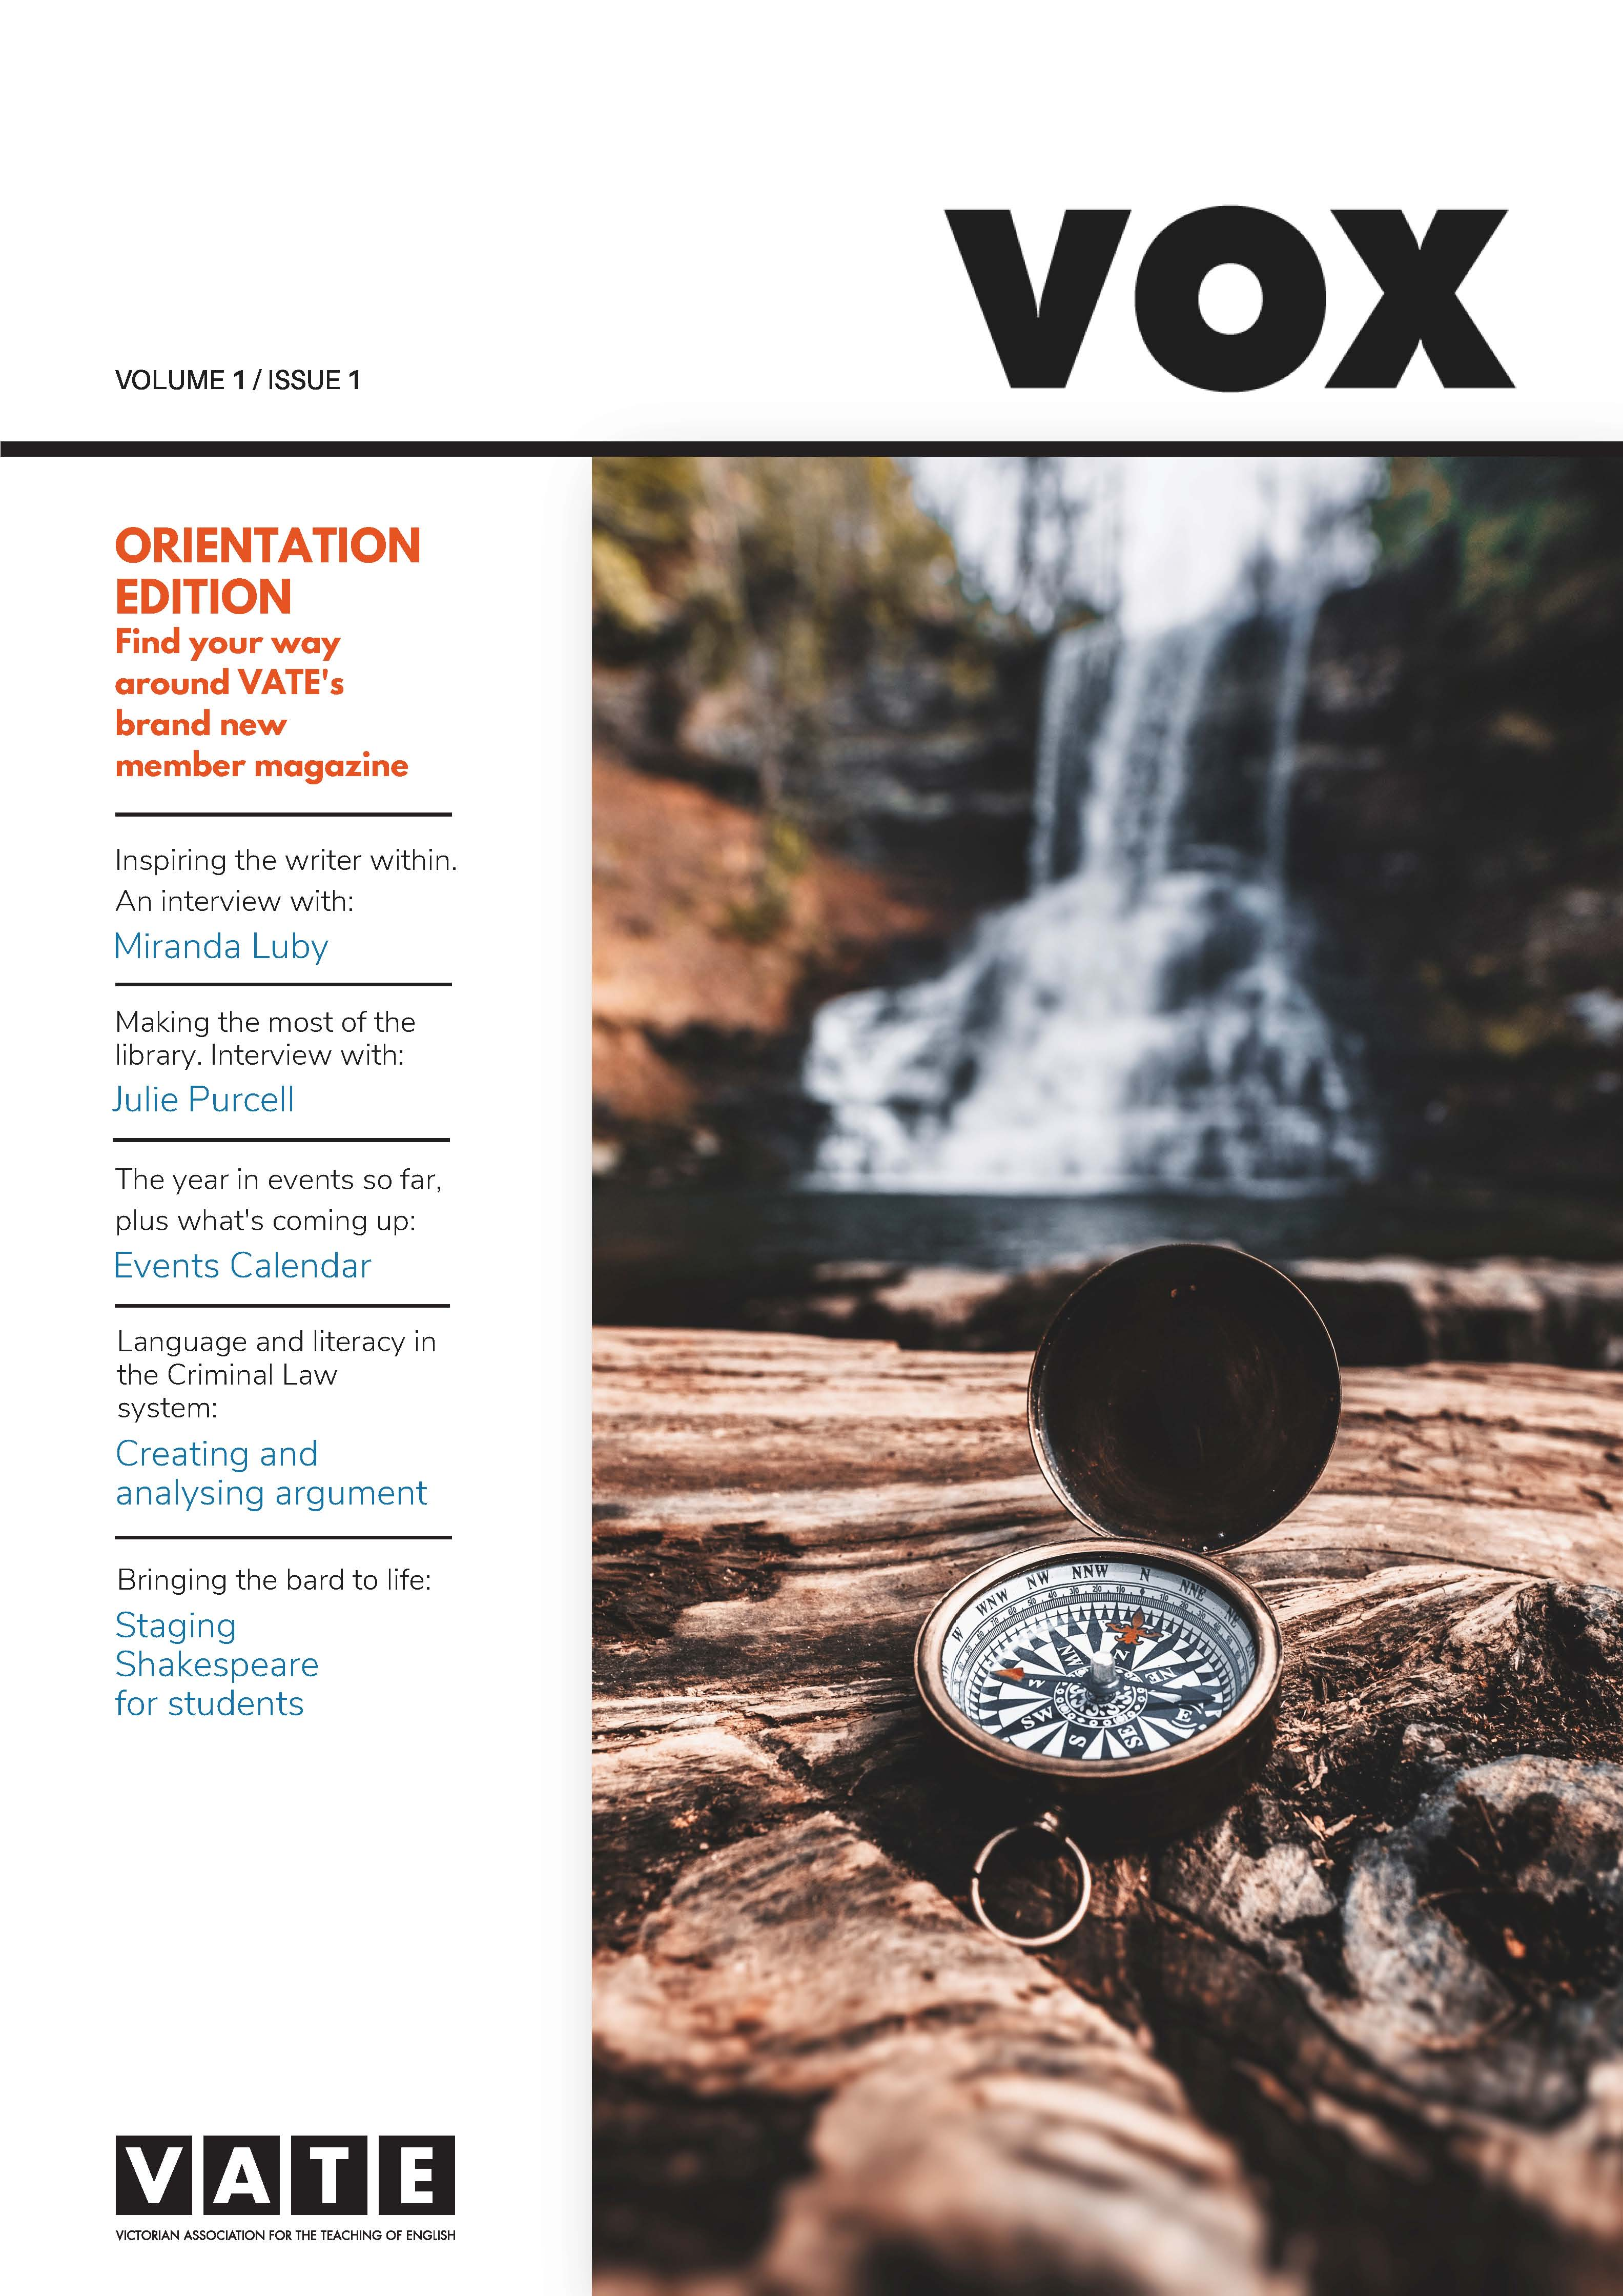 vox vol 1 iss 1 cover